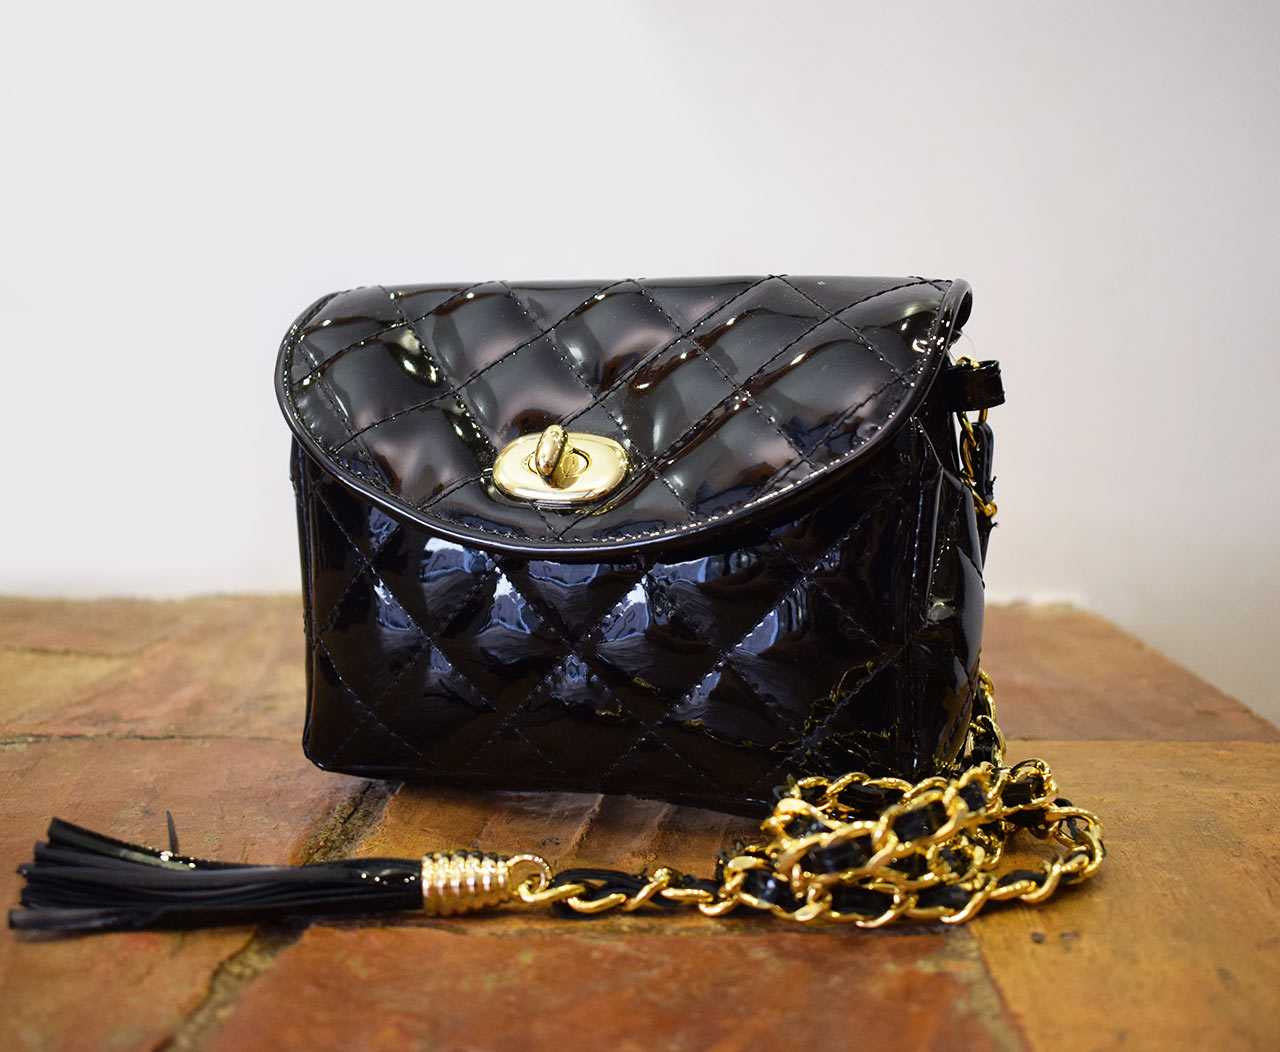 Leather Purse - Mini Venus - Black patent leather